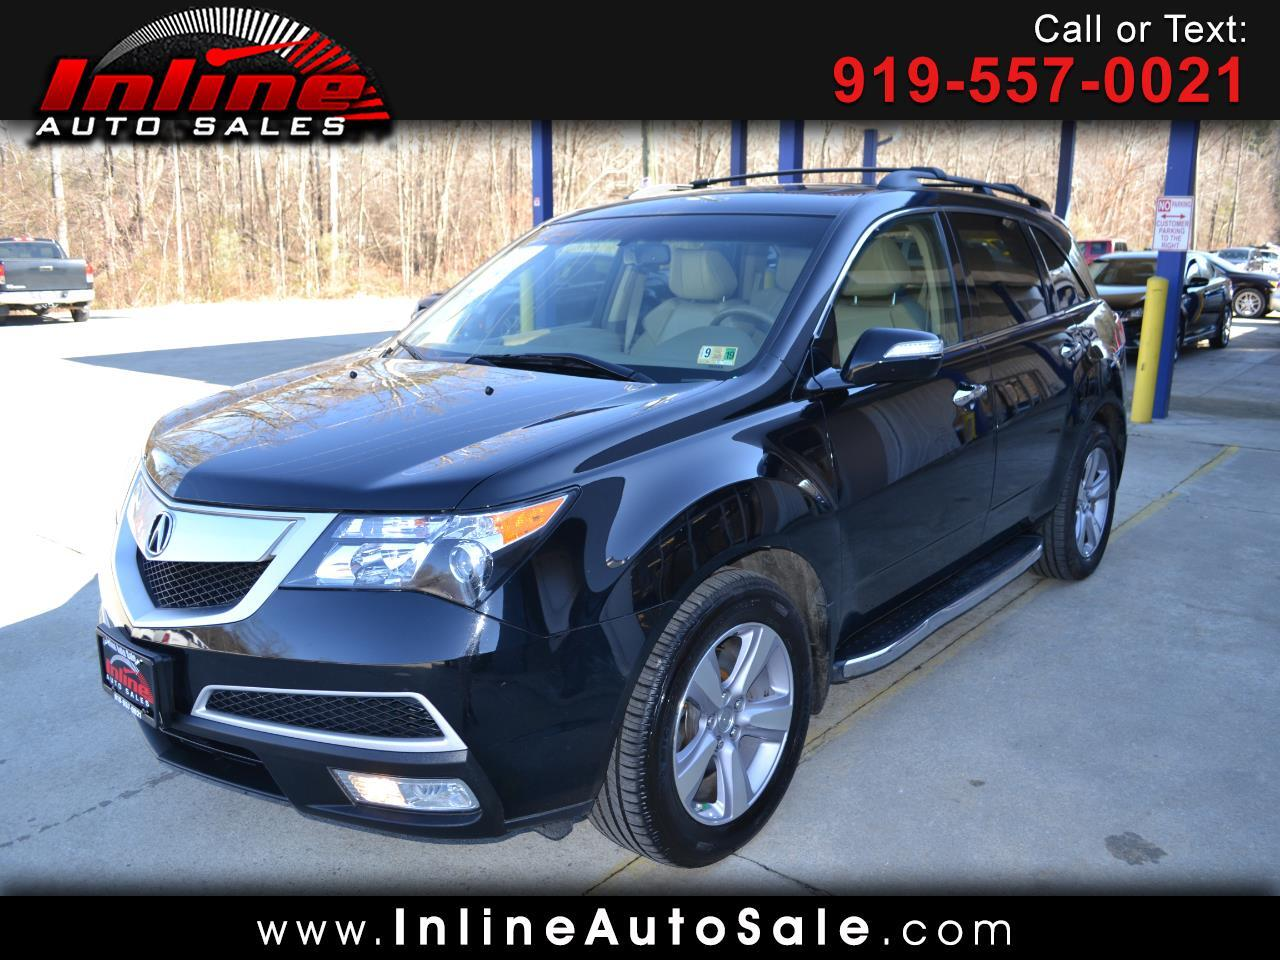 2013 Acura MDX AWD 4dr Tech/Entertainment Pkg